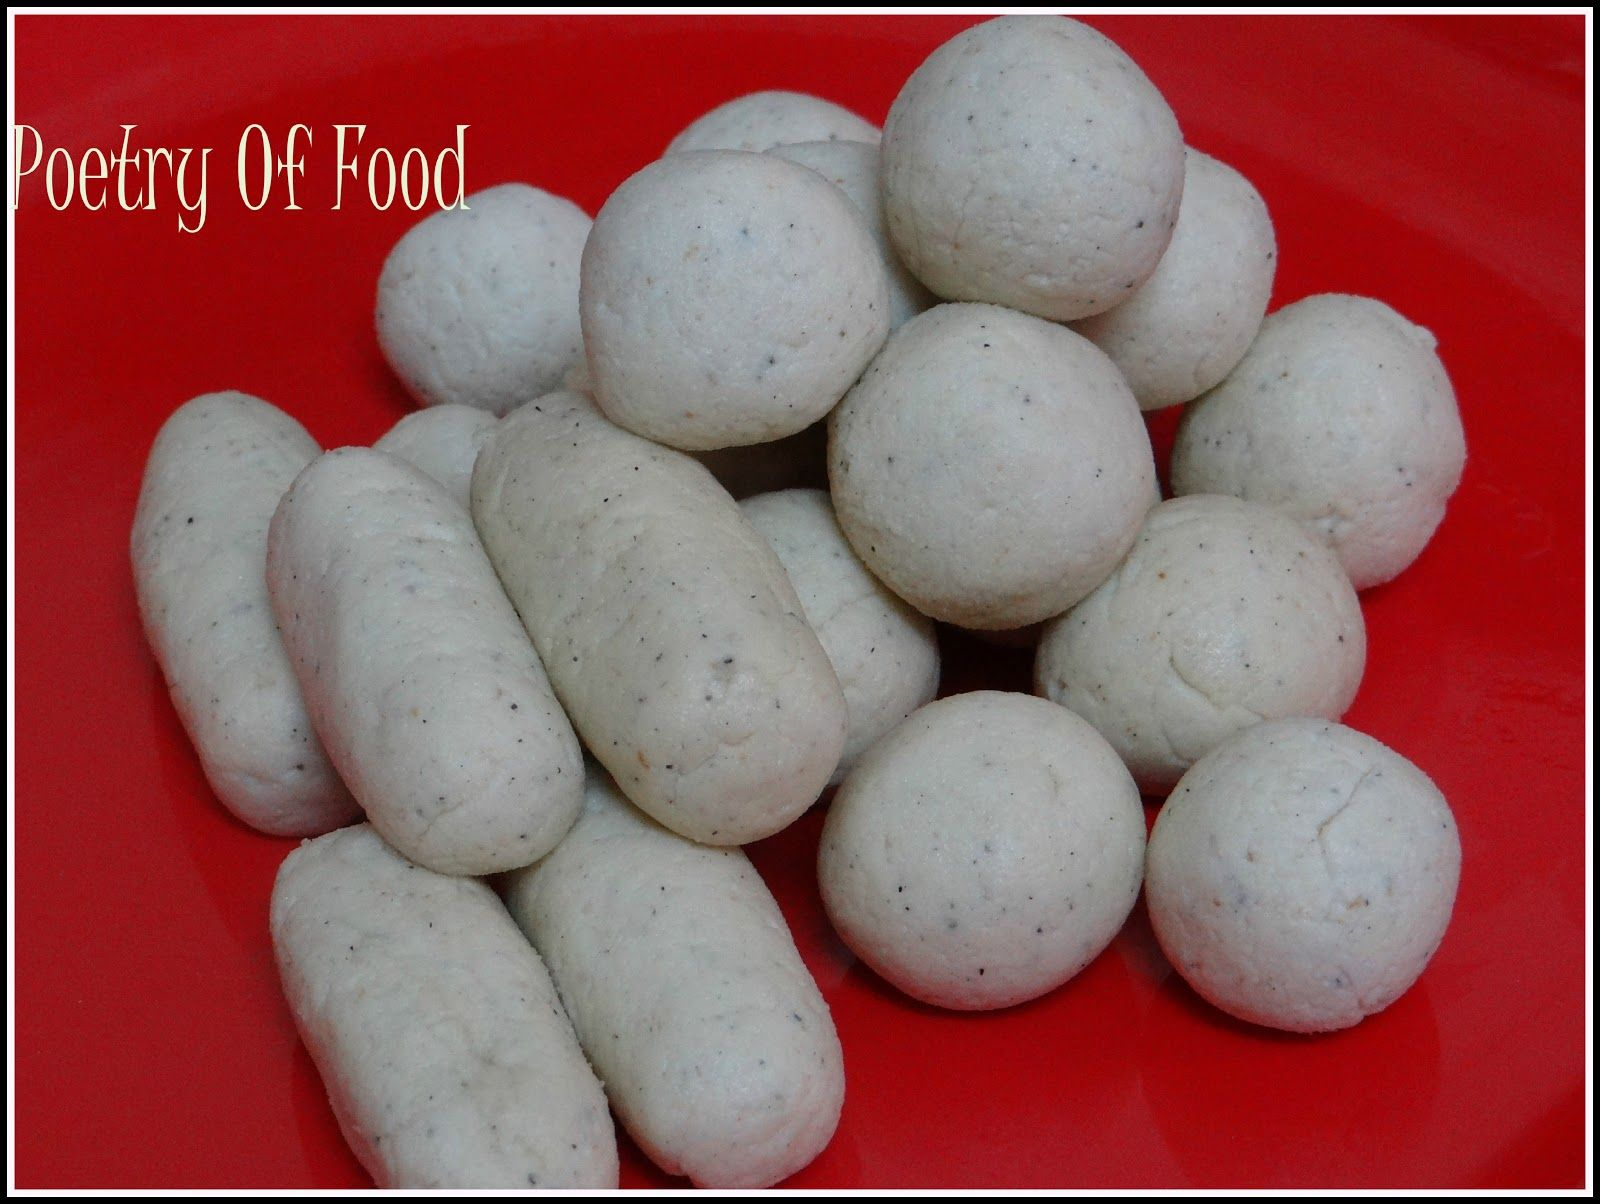 Poetry of food langcha pantua the most famous bengali sweets poetry of food langcha pantua the most famous bengali sweets recipe forumfinder Gallery